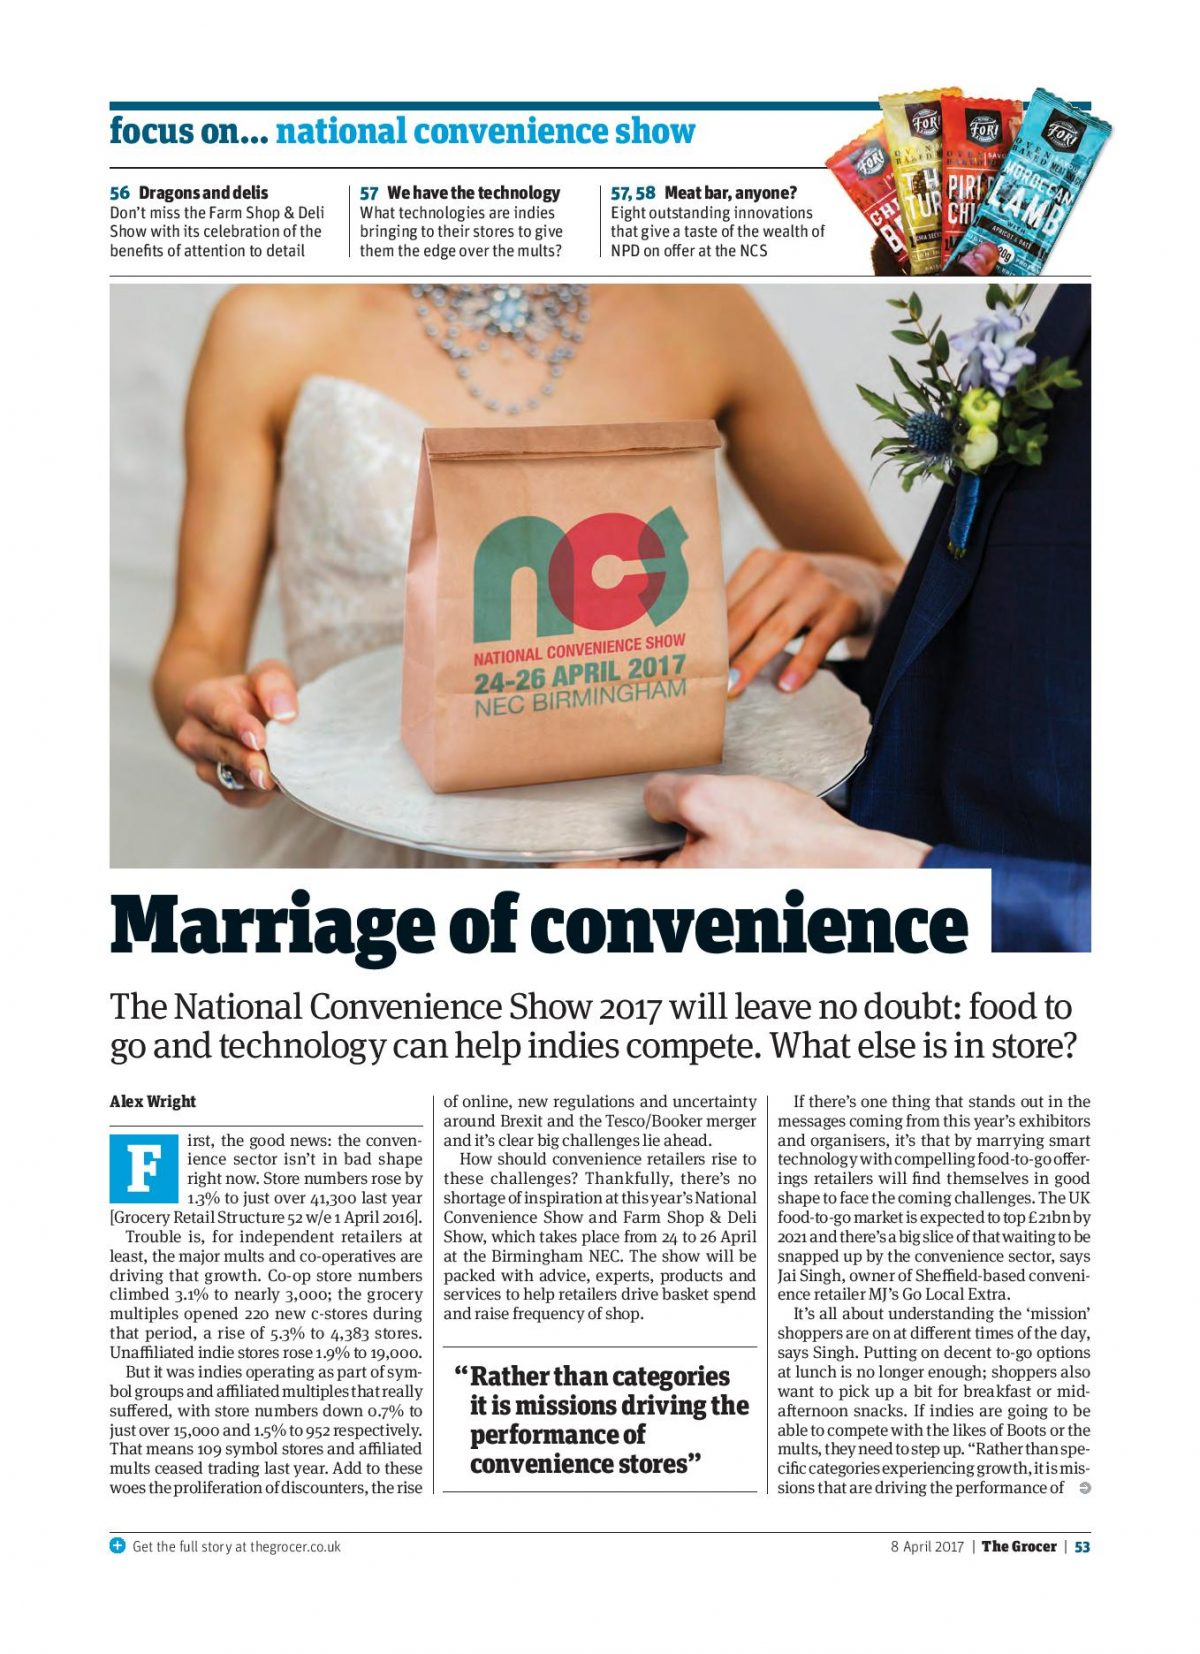 marriage-of-convenience-page-001